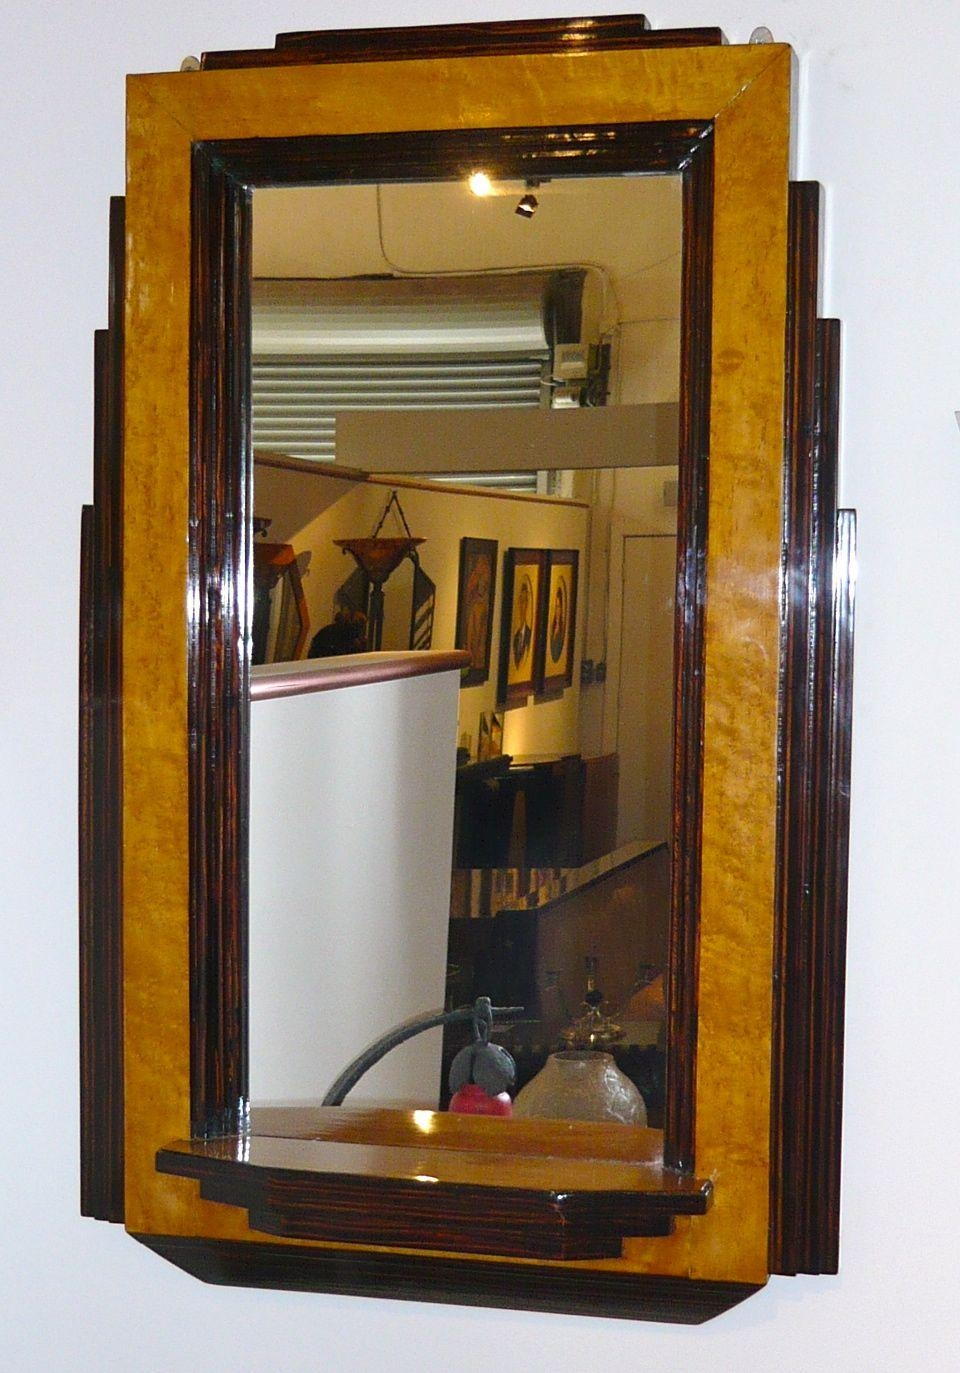 Art Deco Mirrors For Sale | Art Deco Collection For Artdeco Mirrors (Image 5 of 20)